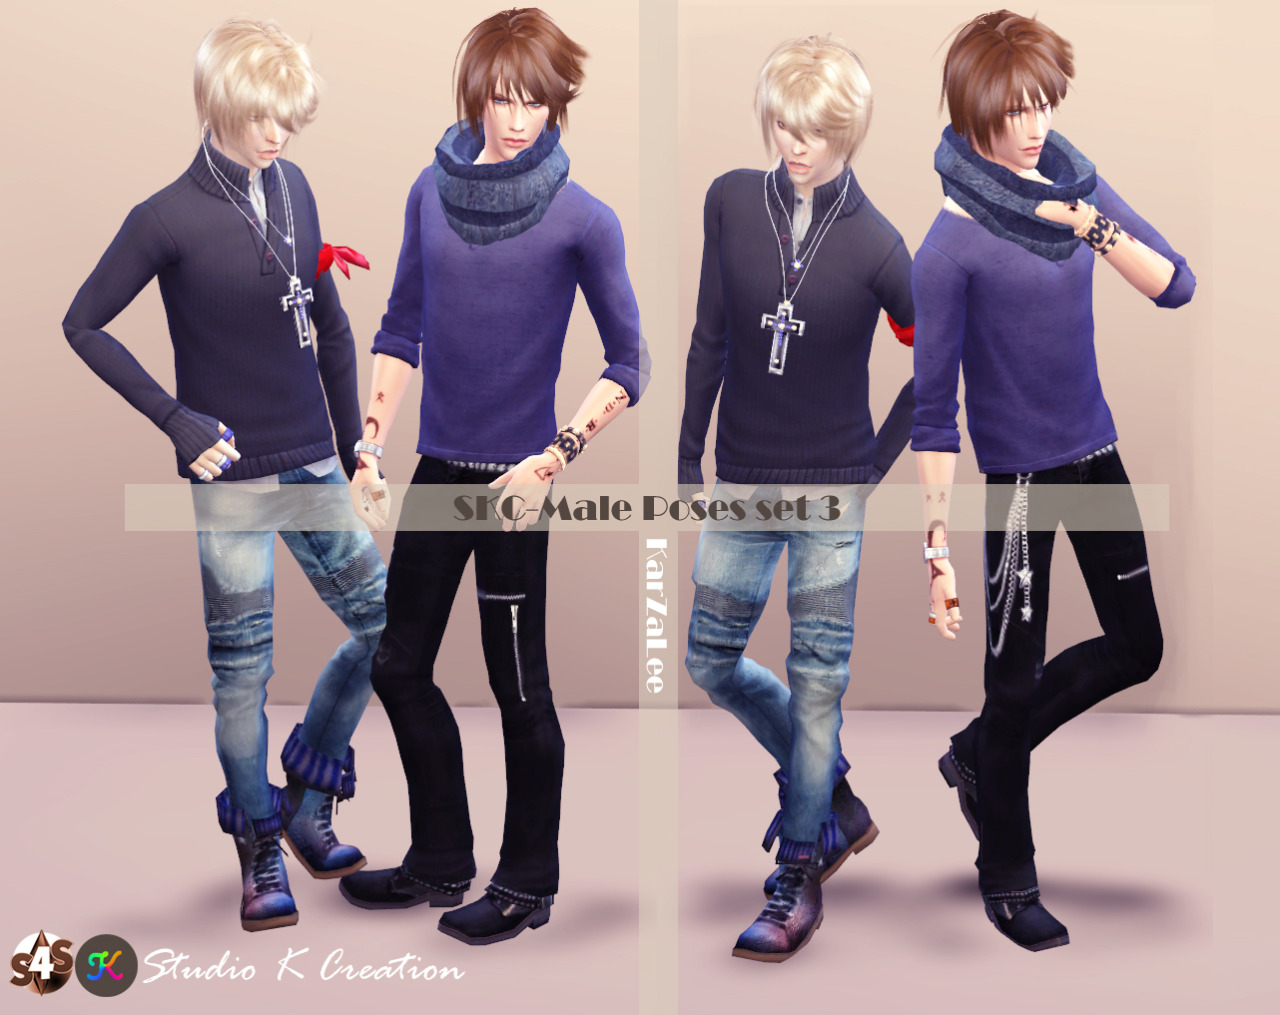 SKC Male Pose Set 3 by Karzalee